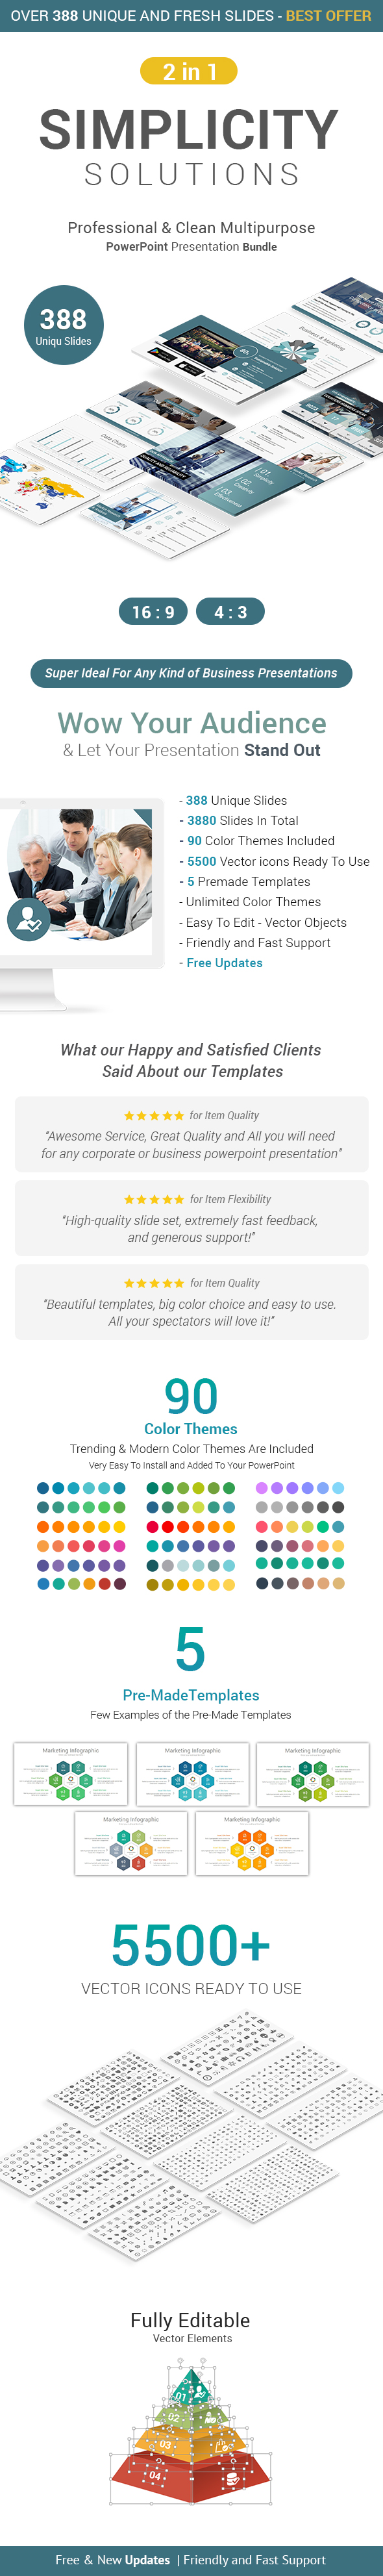 Simplicity Business Solutions - 2 In 1 PowerPoint Presentation Template Bundle